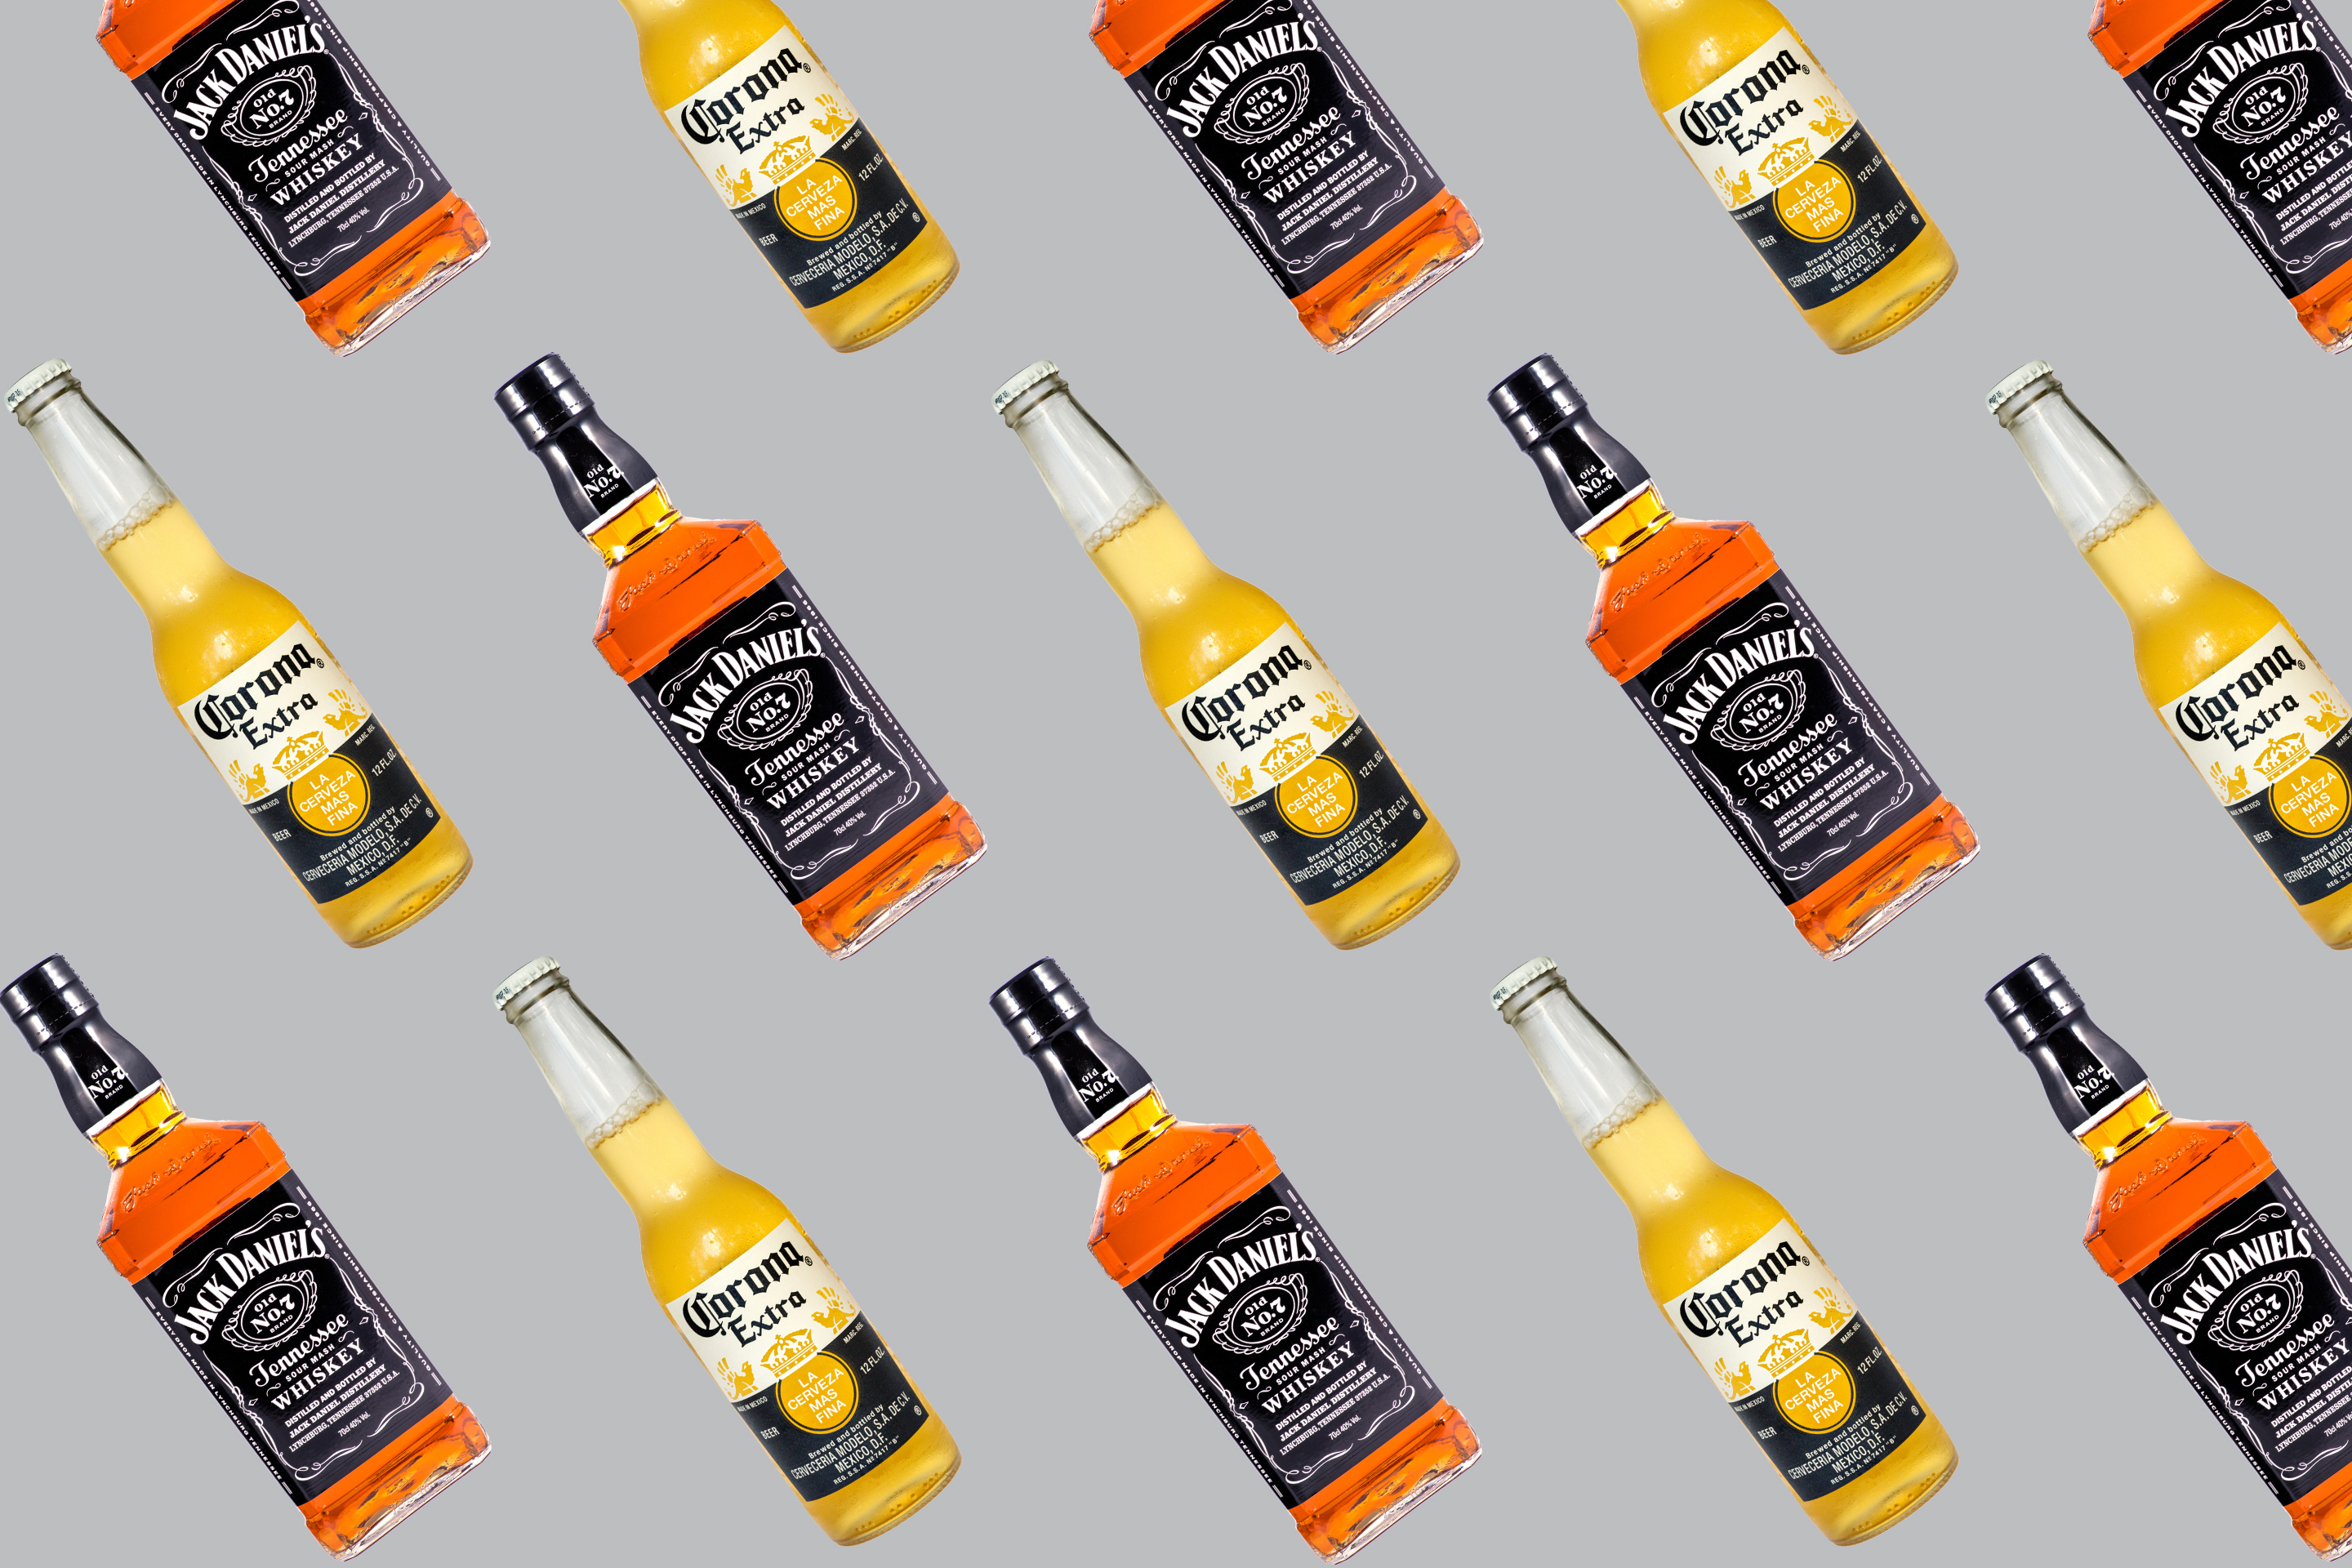 Wall Street isn't sure the rumored deal between Corona maker Constellation Brands and Jack Daniel's seller Brown-Forman will become a reality.